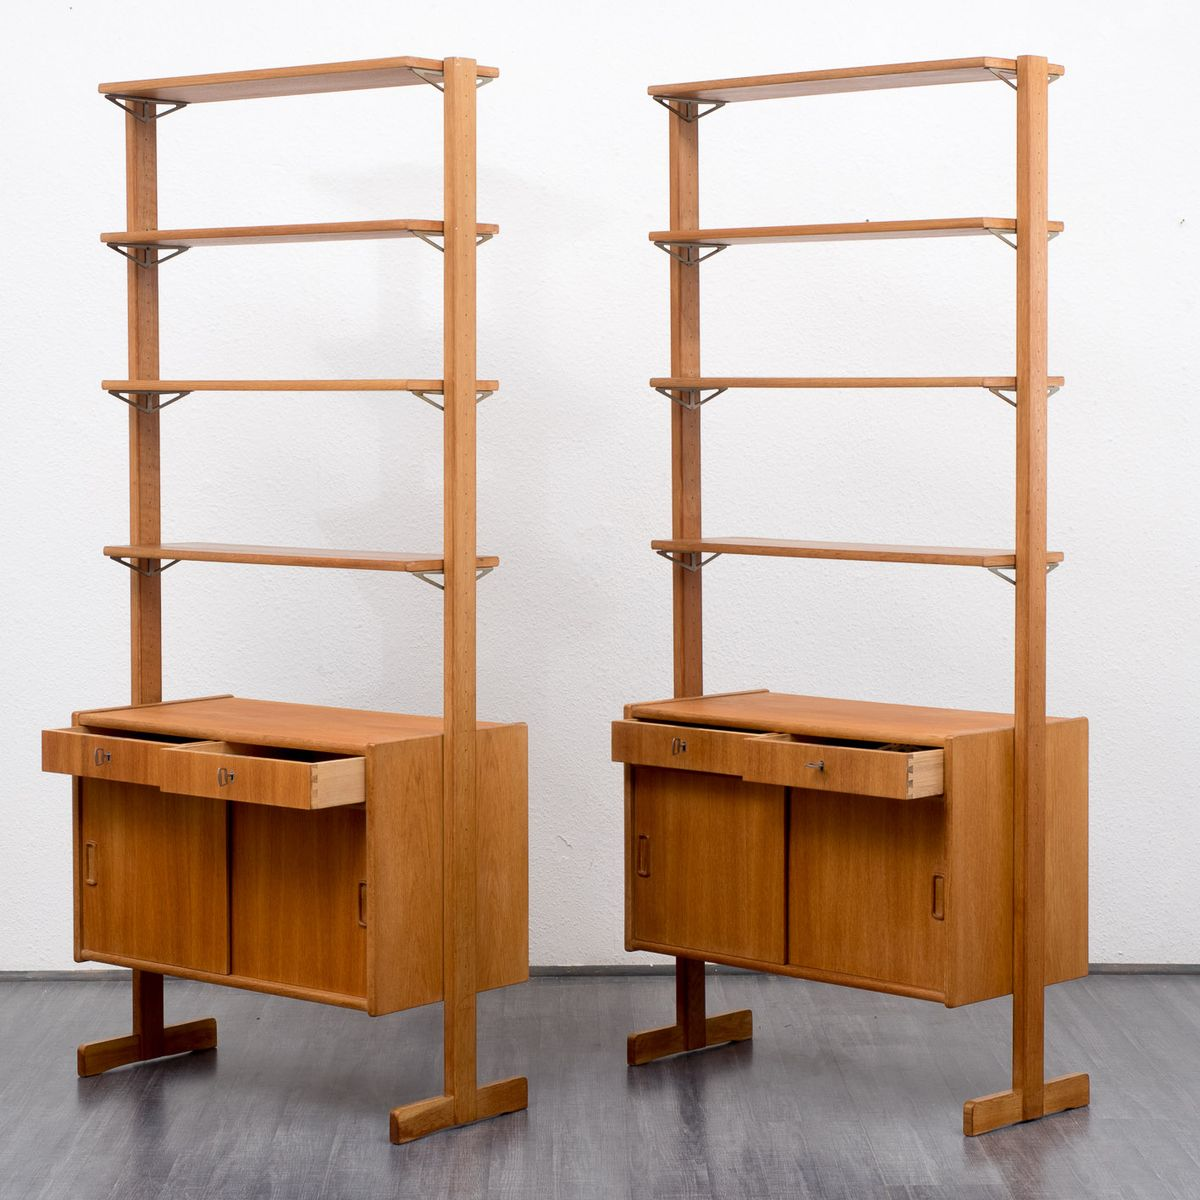 Free Standing Oak Shelving Unit 1960s For Sale At Pamono